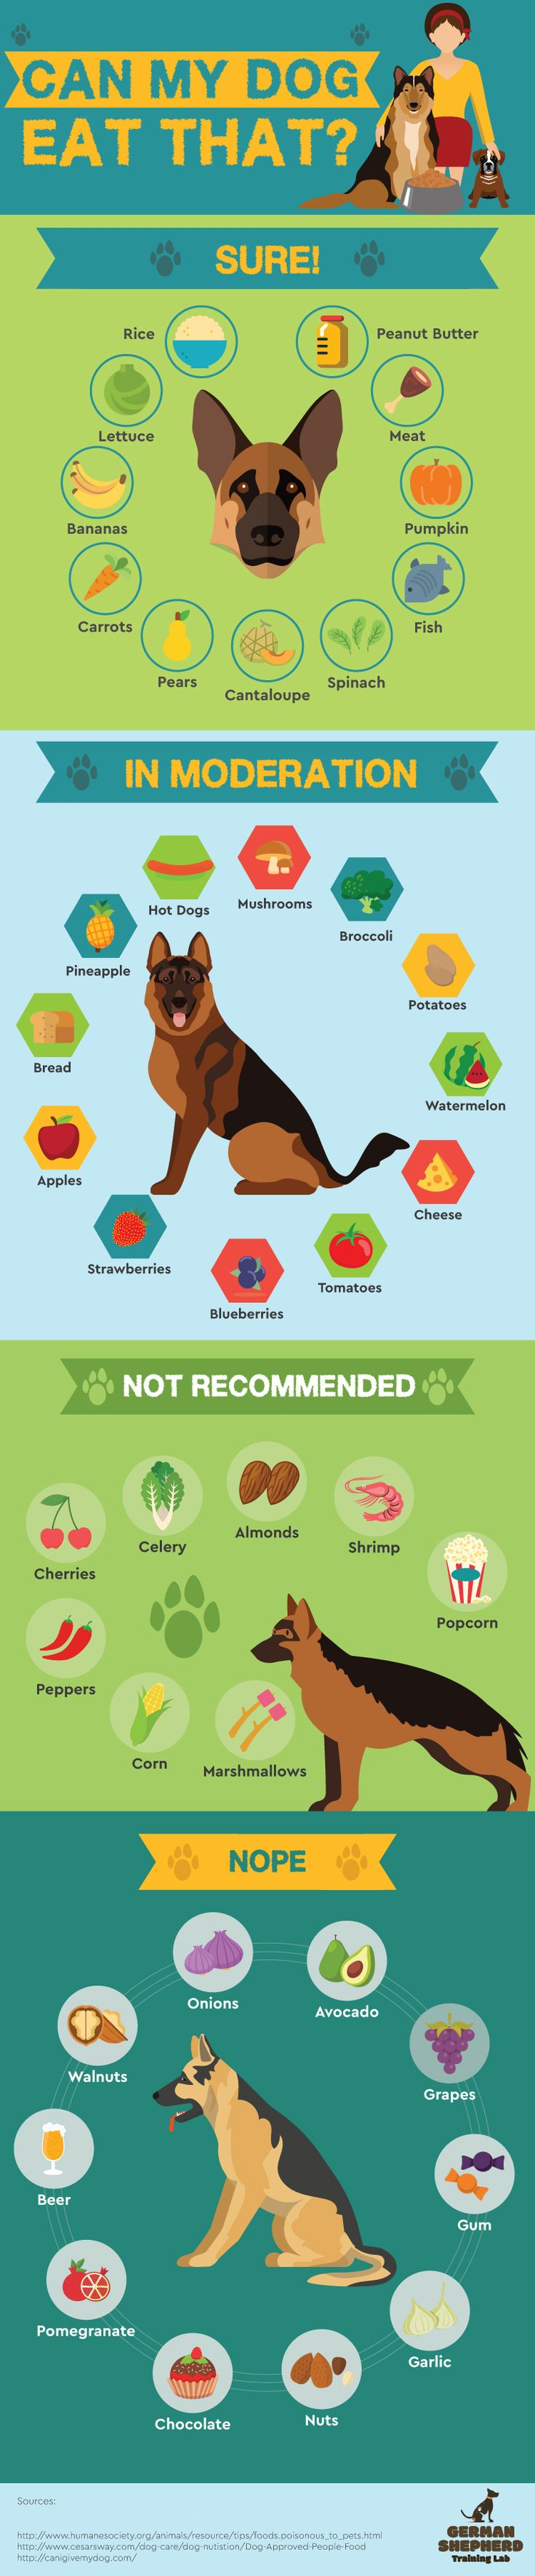 best olivers must haves images on pinterest pets dog treats